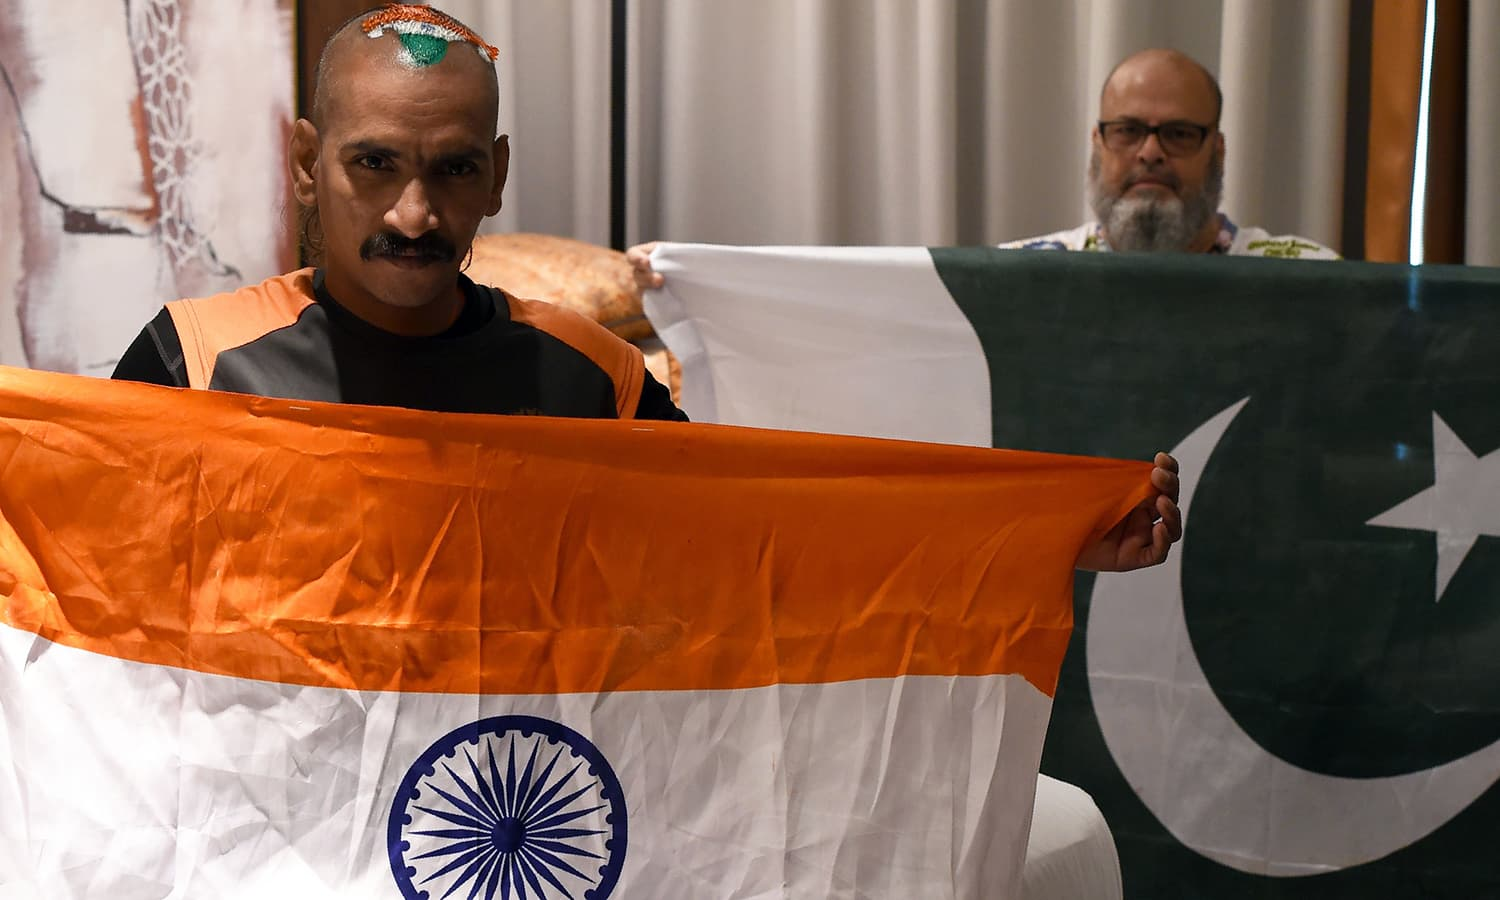 Indian cricket fan Sudhir Kumar (L) and Pakistan cricket fan Mohammad Basheer hold their respective national flags as they pose for a picture at a hotel in Dubai in this photo taken on Sept 19, 2018. — AFP